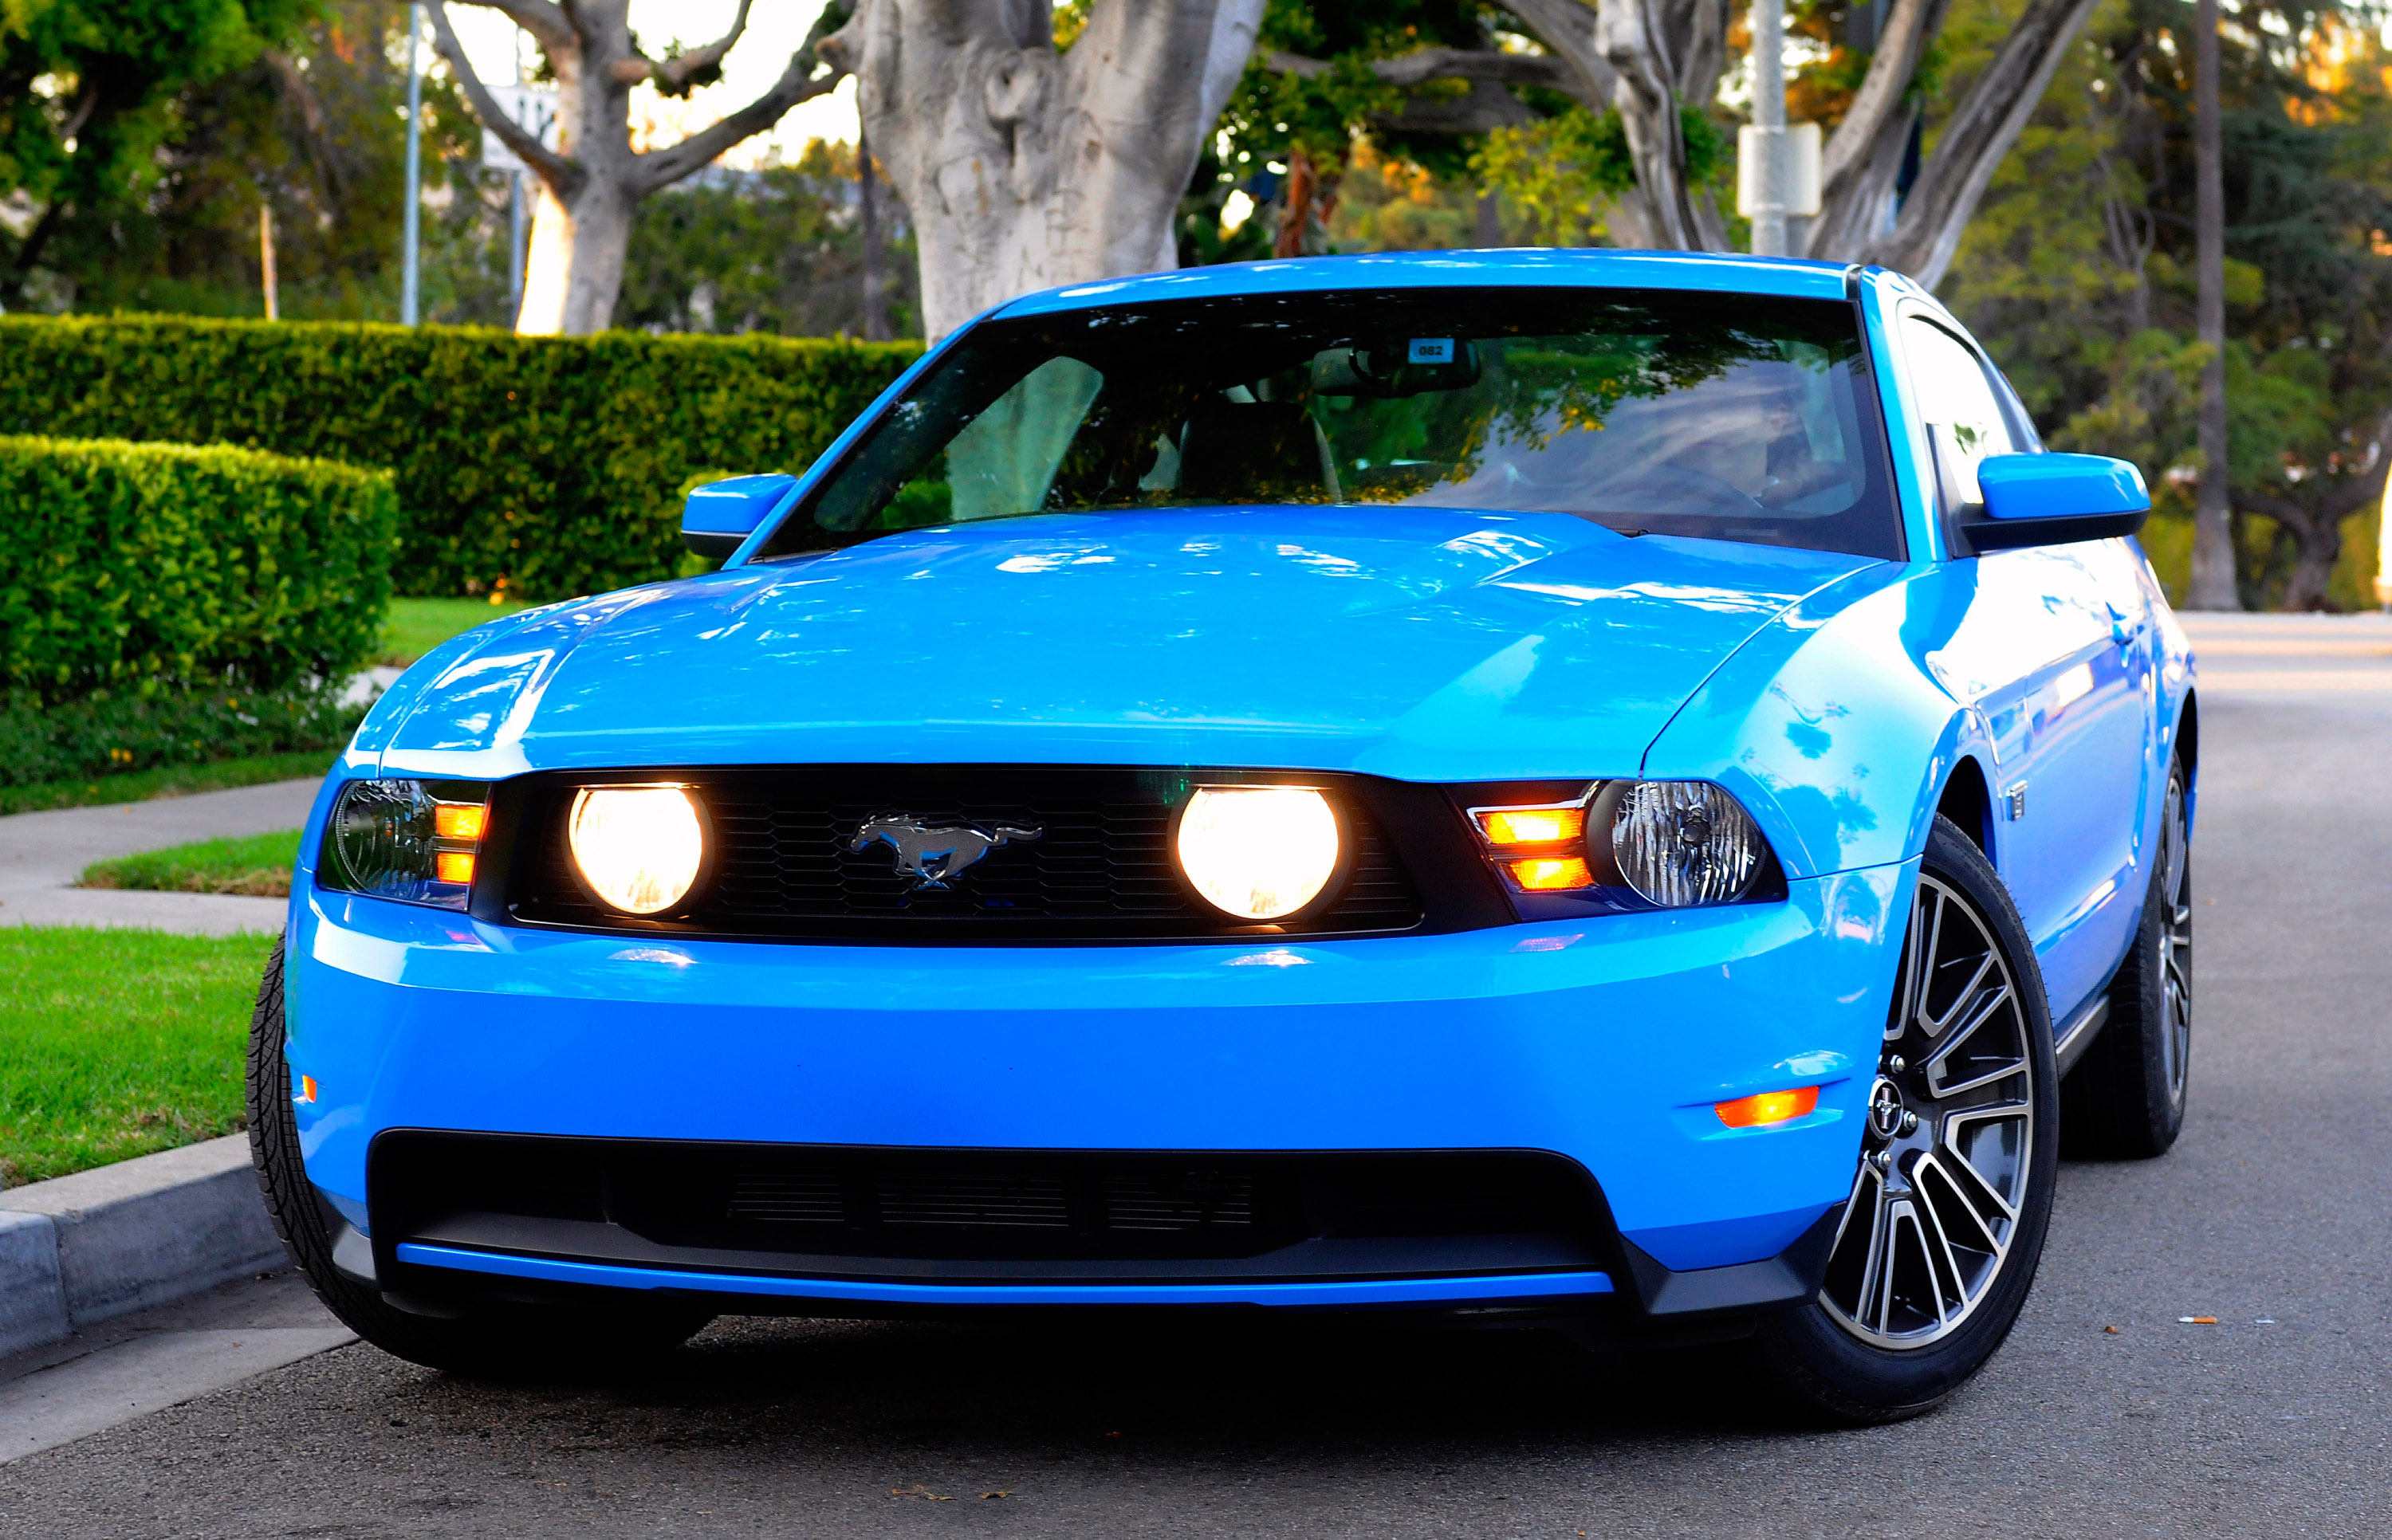 High Resolution Muscle Car Wallpapers 2010 Ford Mustang Gt Picture 21902